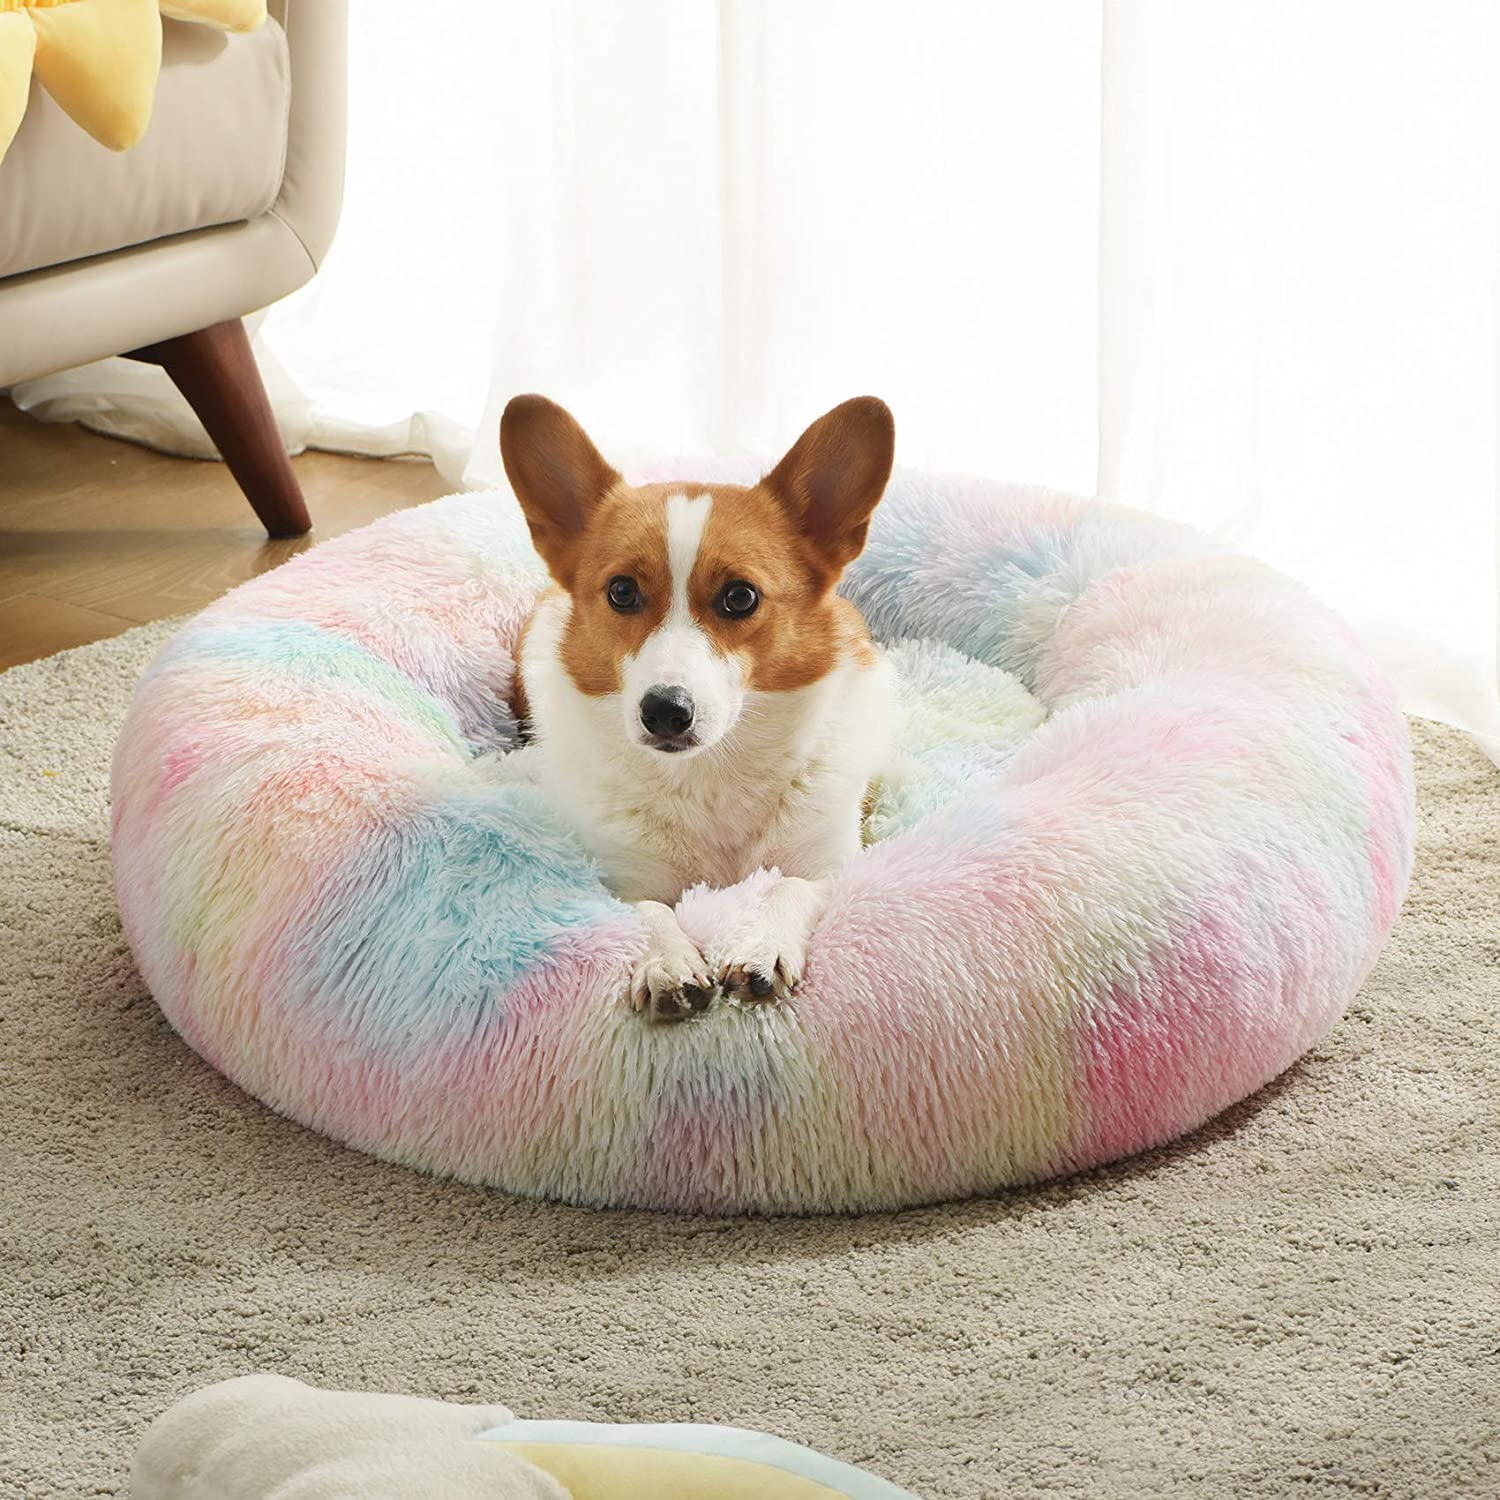 Western Home Faux Fur Dog Bed & Cat Bed, Original Calming Pup Dog Bed for Small Medium Pet, Anti Anxiety Donut Cuddler Round Warm Bed for Dogs with Fluffy Comfy Plush Kennel Cushion(20